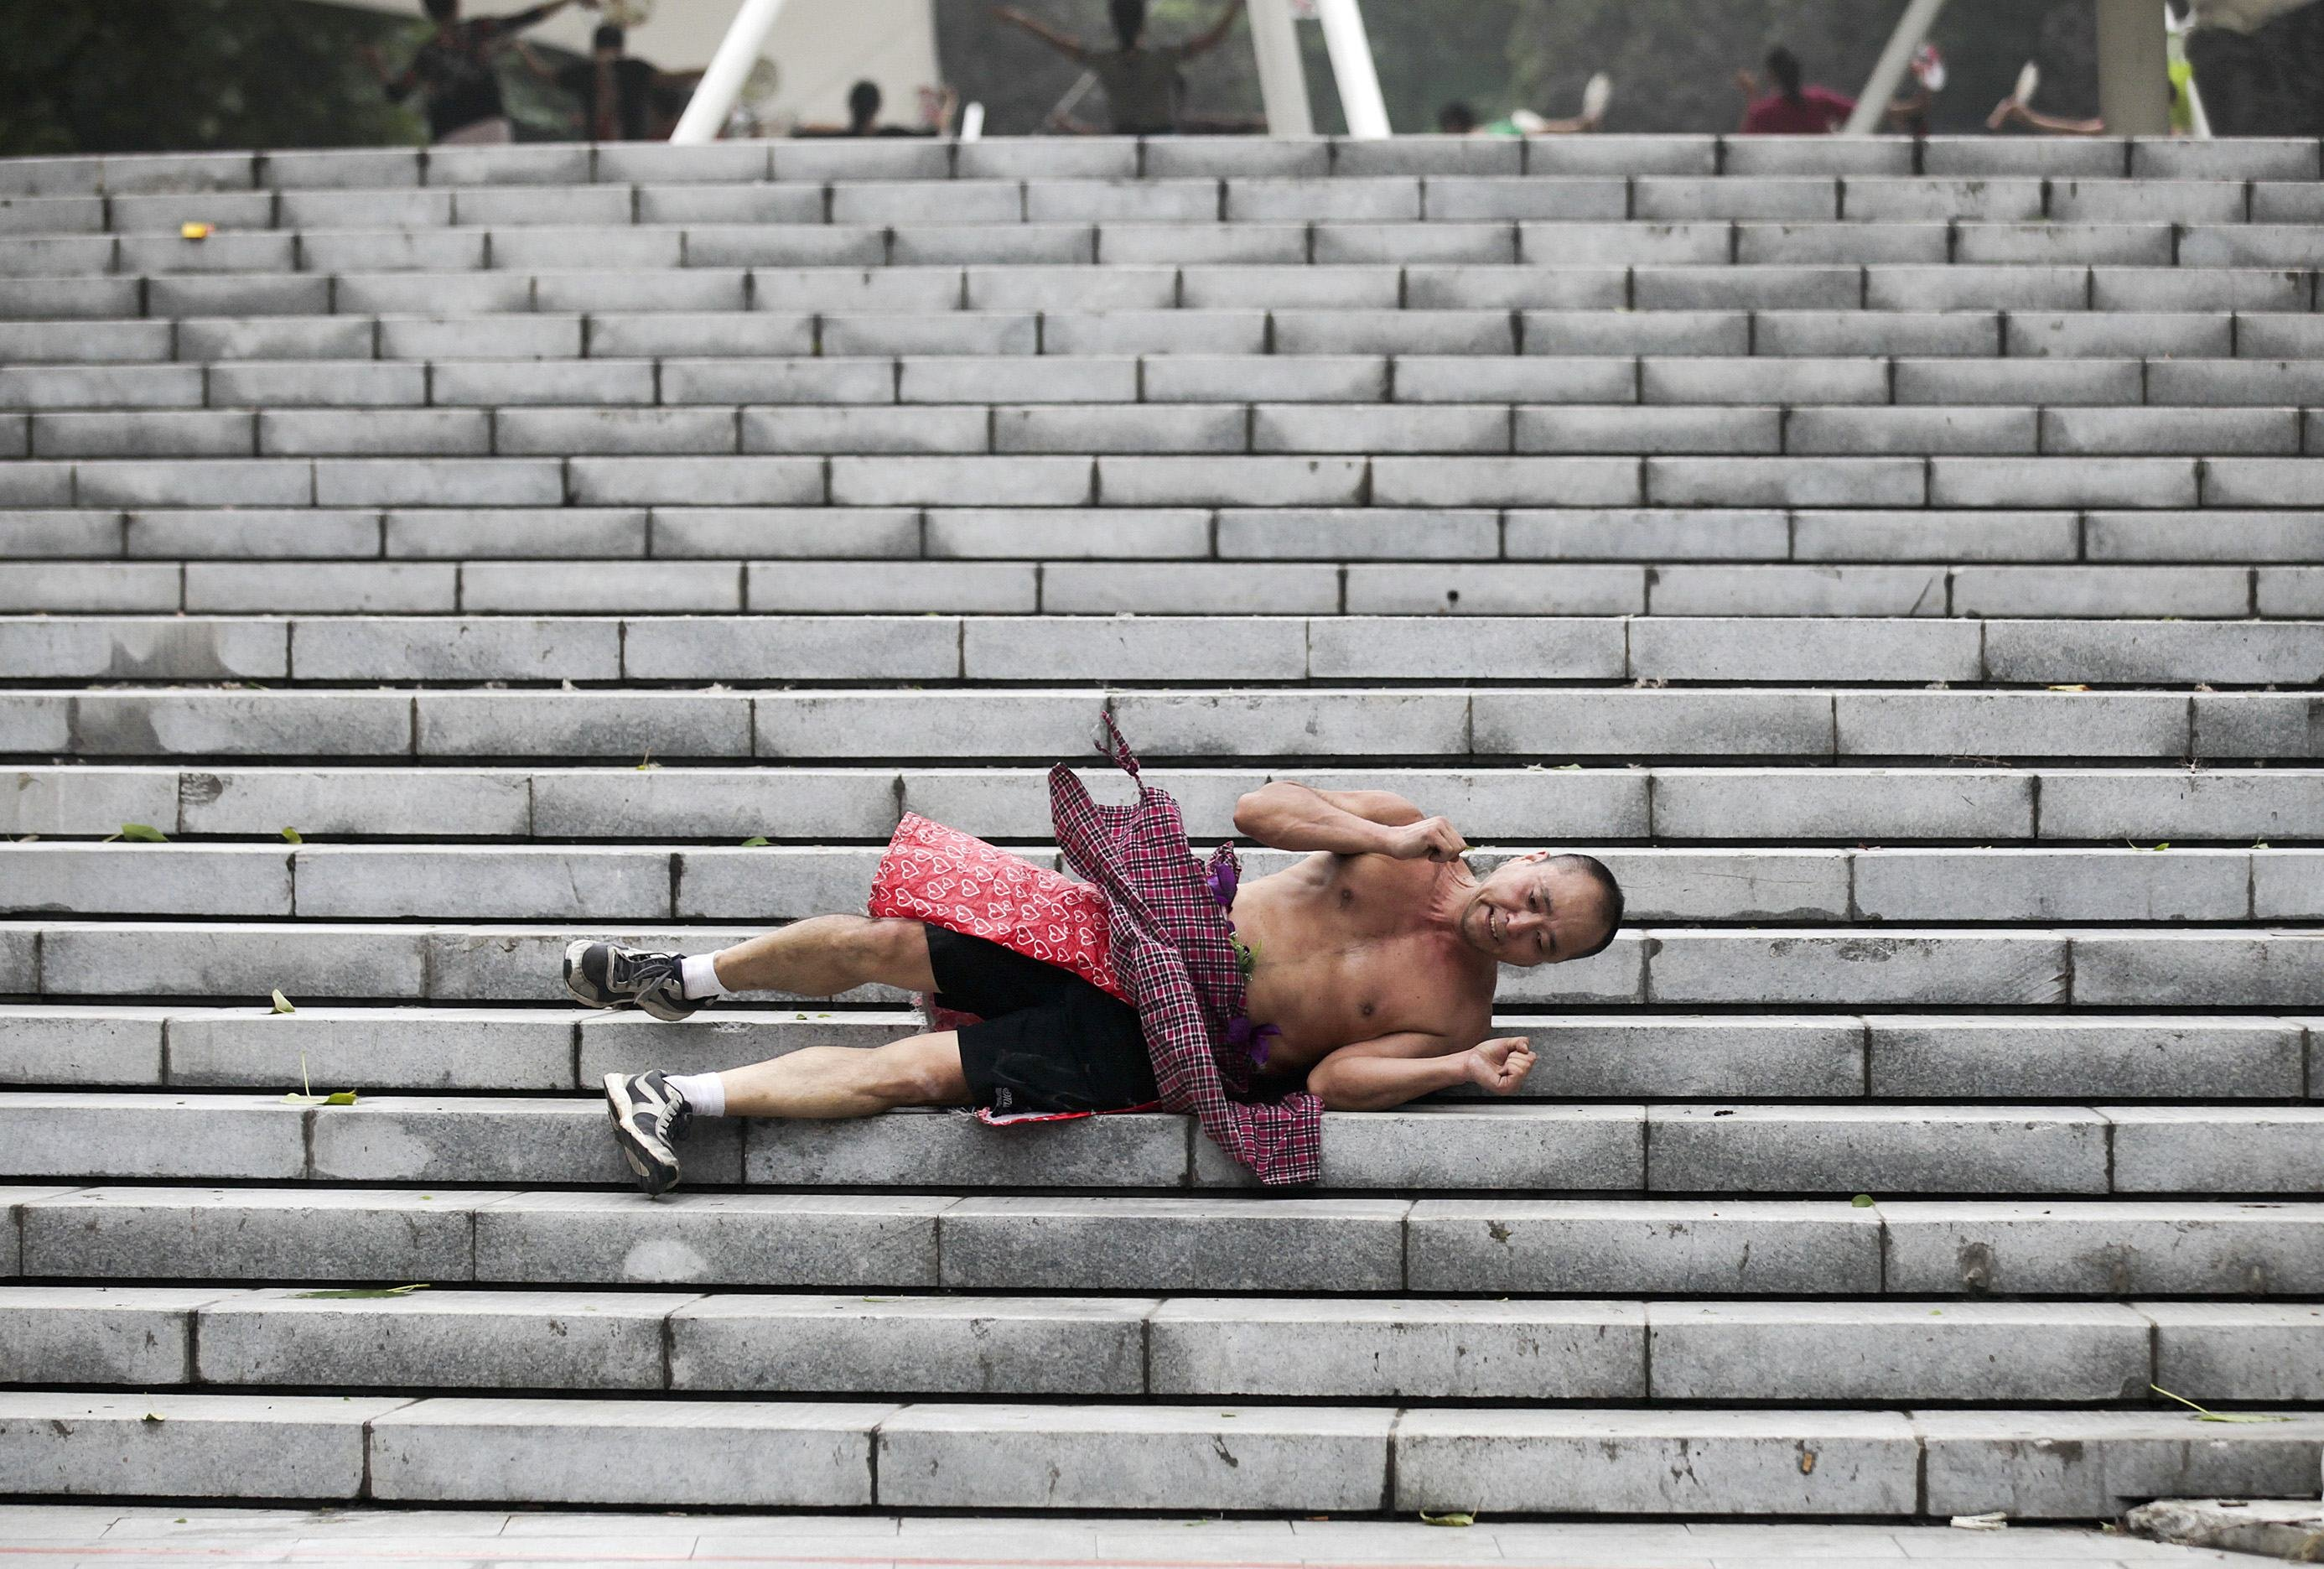 Li Zhiheng, an amateur athlete, holds up his hands as he rolls down a stairway during a morning exercise at a park in Xi'an, Shaanxi province on Sept. 11, 2014.